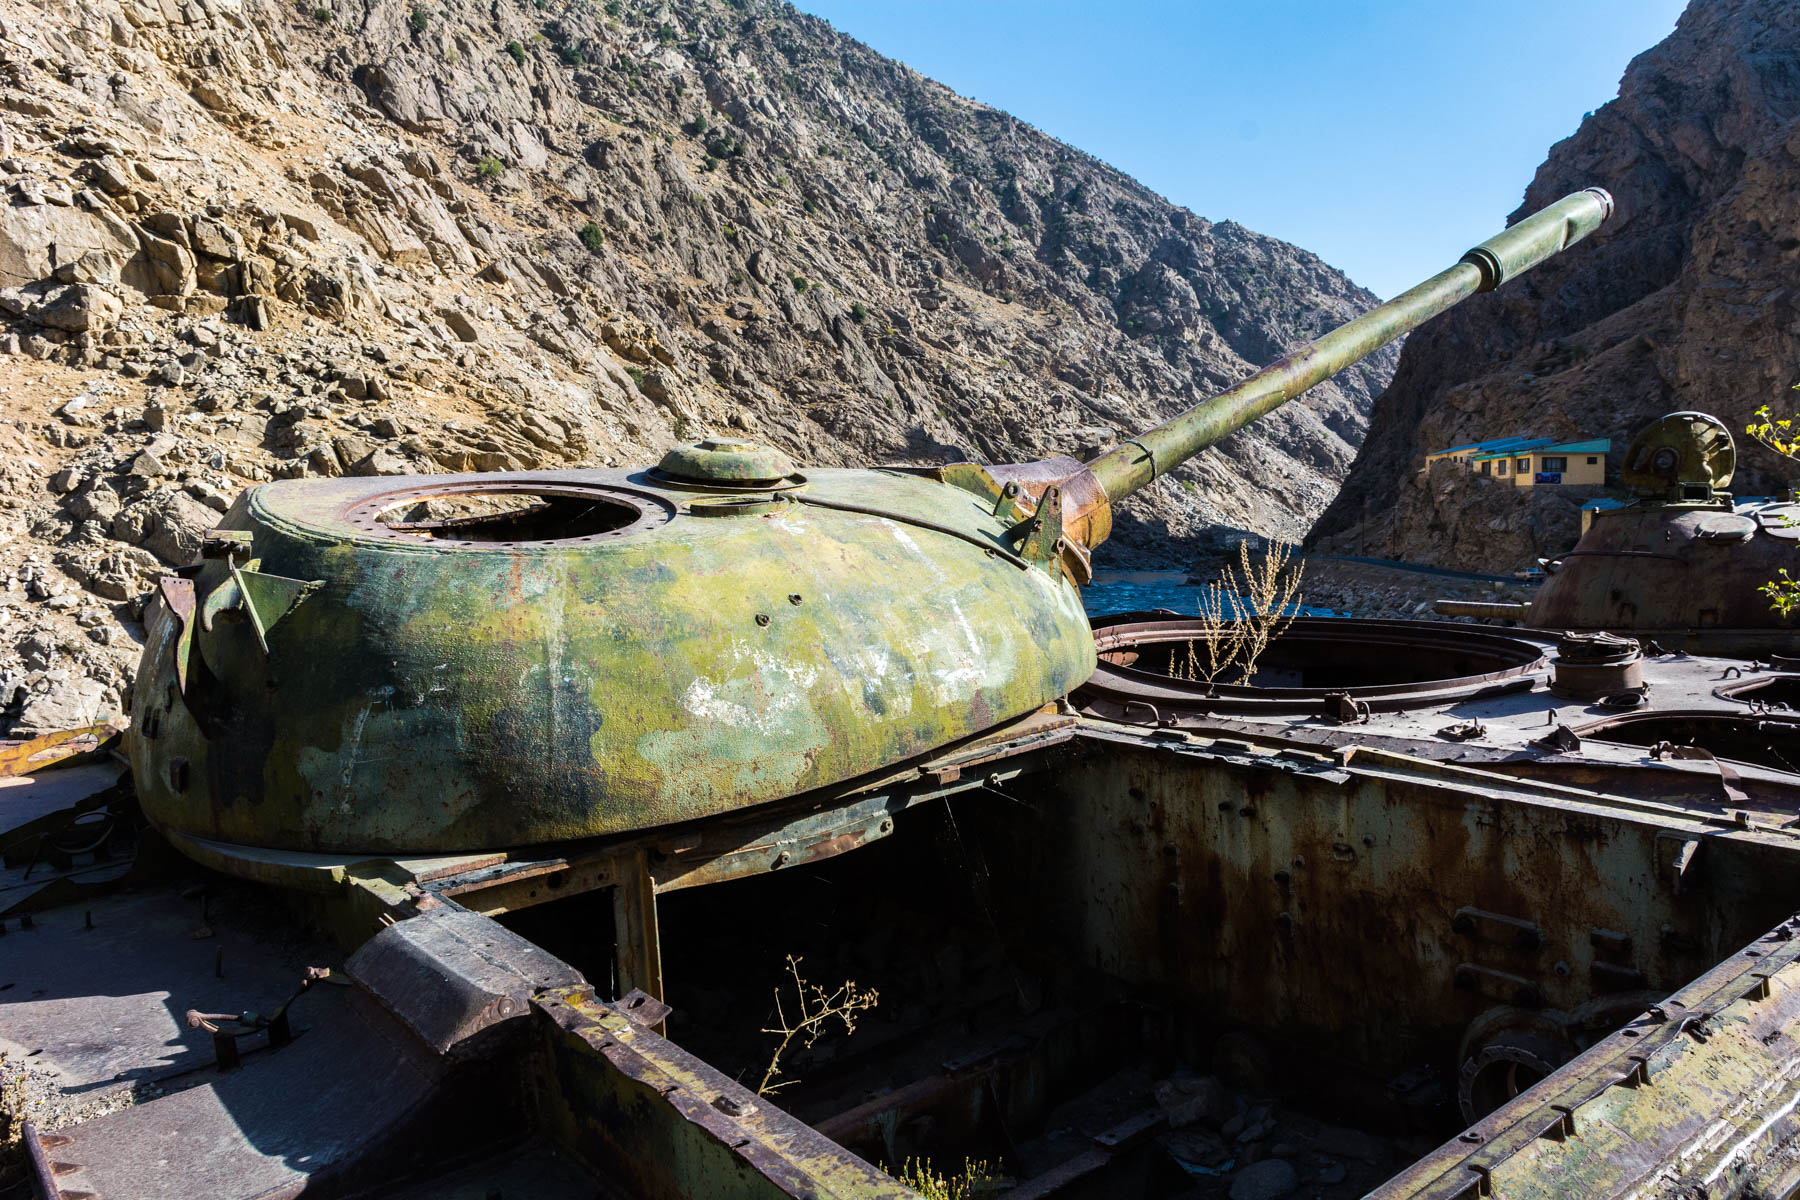 A tank in the Panjshir Valley, only 2 hours away from Kabul, Afghanistan - Lost With Purpose